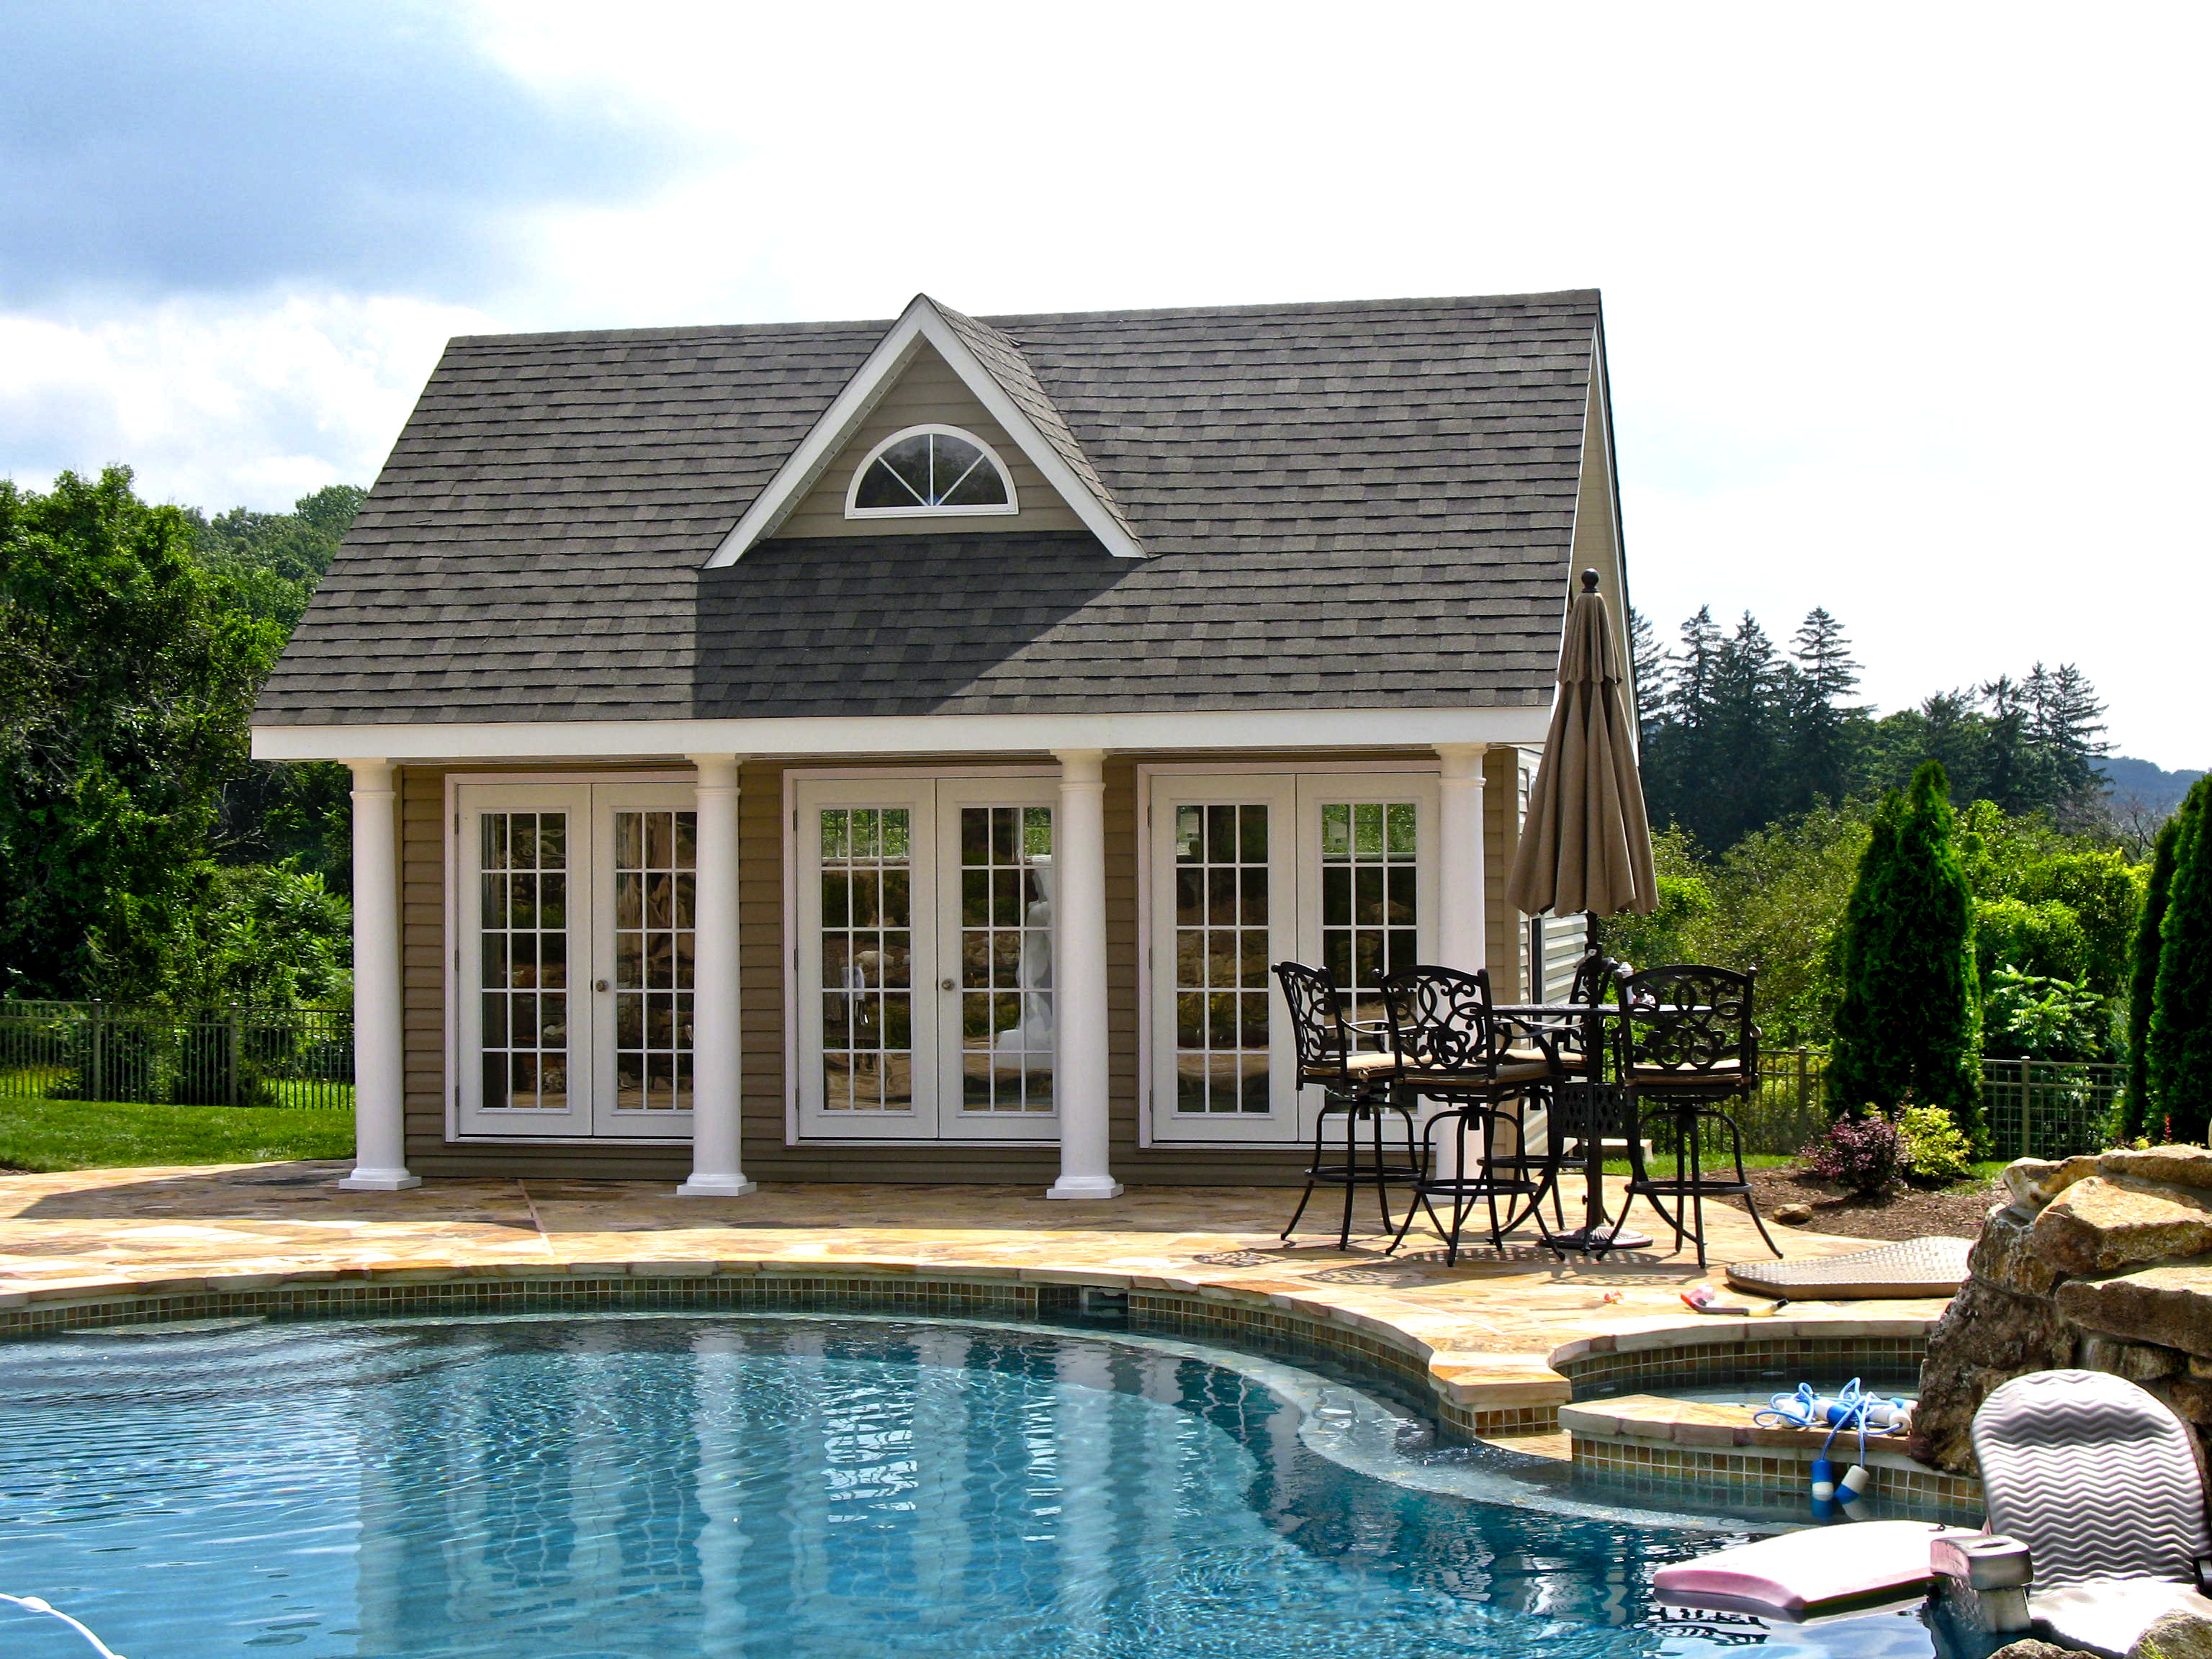 Heritage pool houses photos homestead structures for Pool house plans with garage